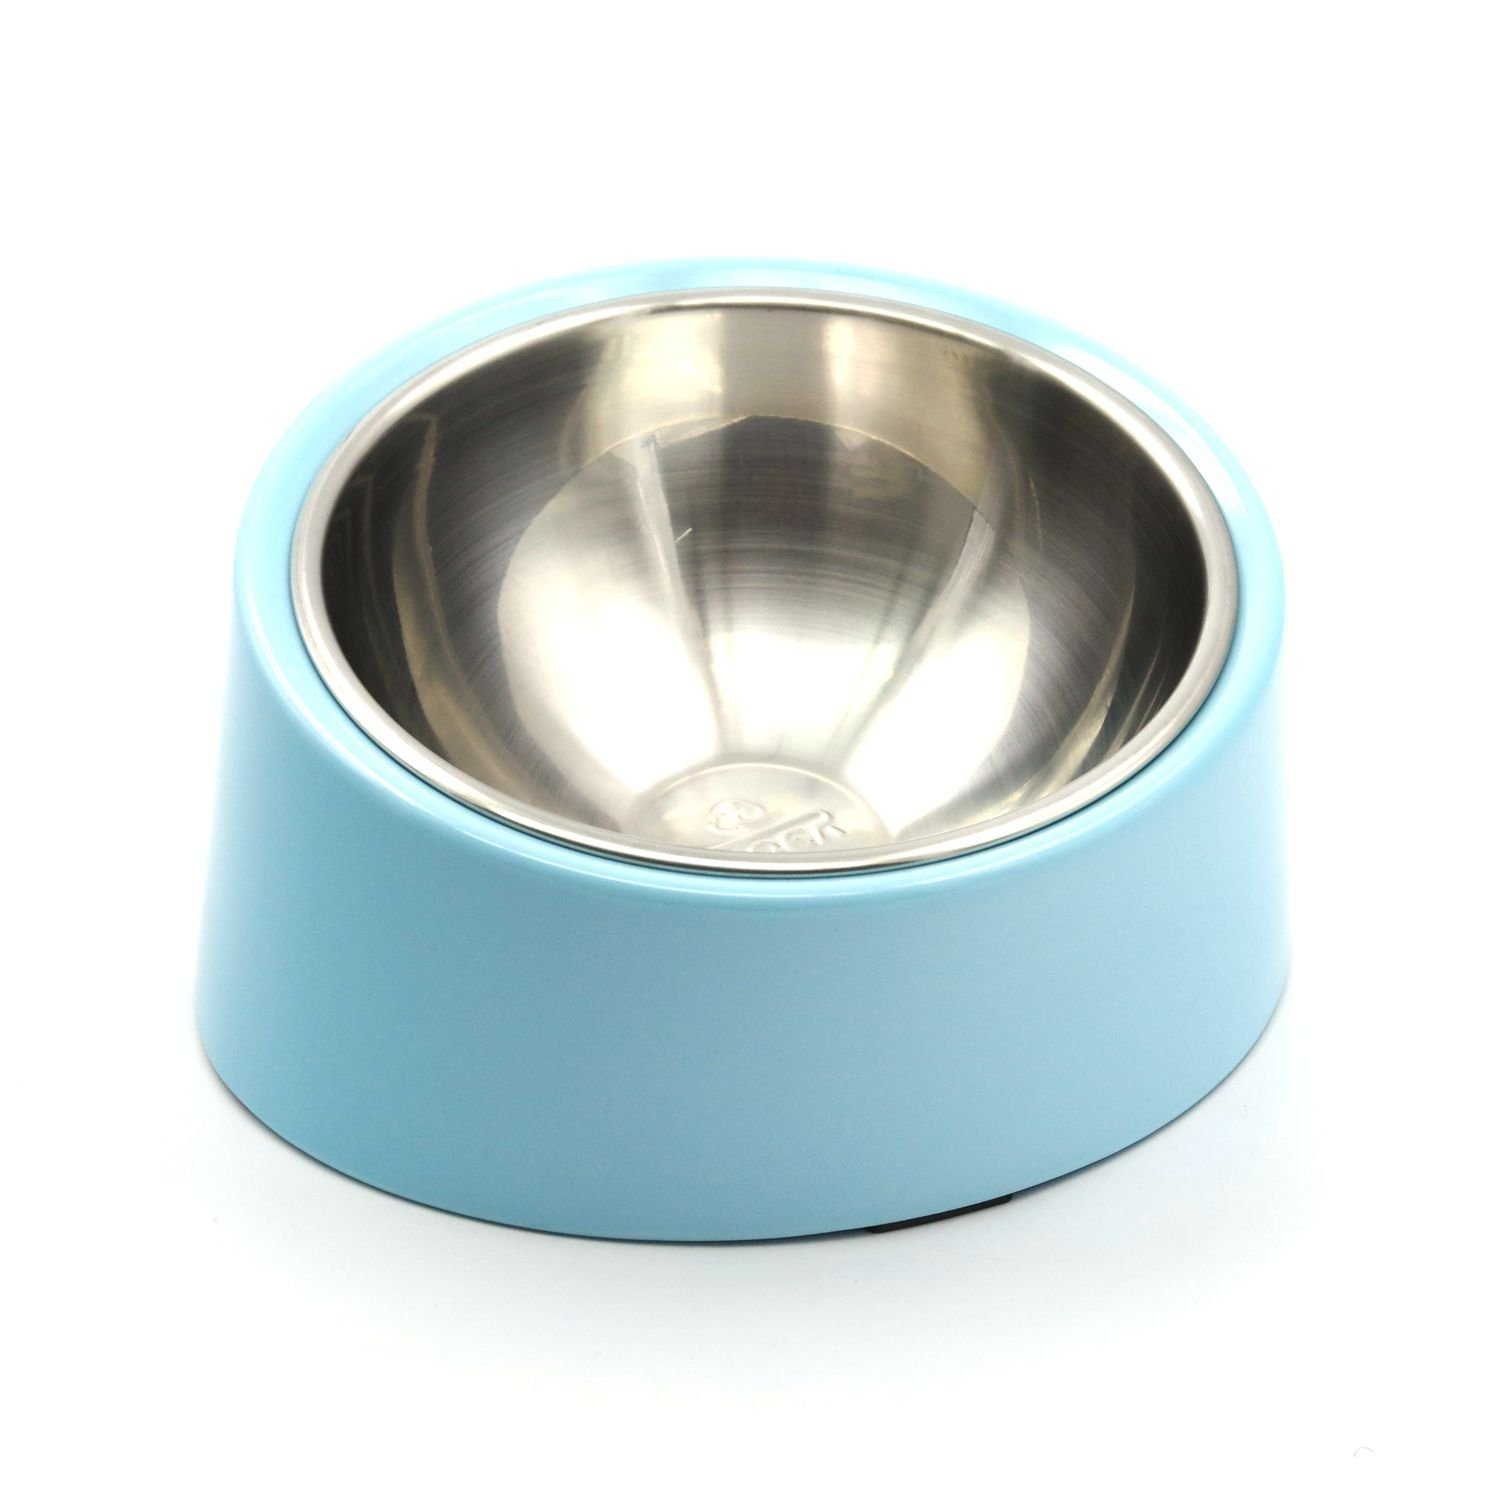 Super Design Food Bowl Especially Suitable Dog Squashed Nose Amblyopia, 1 Pack